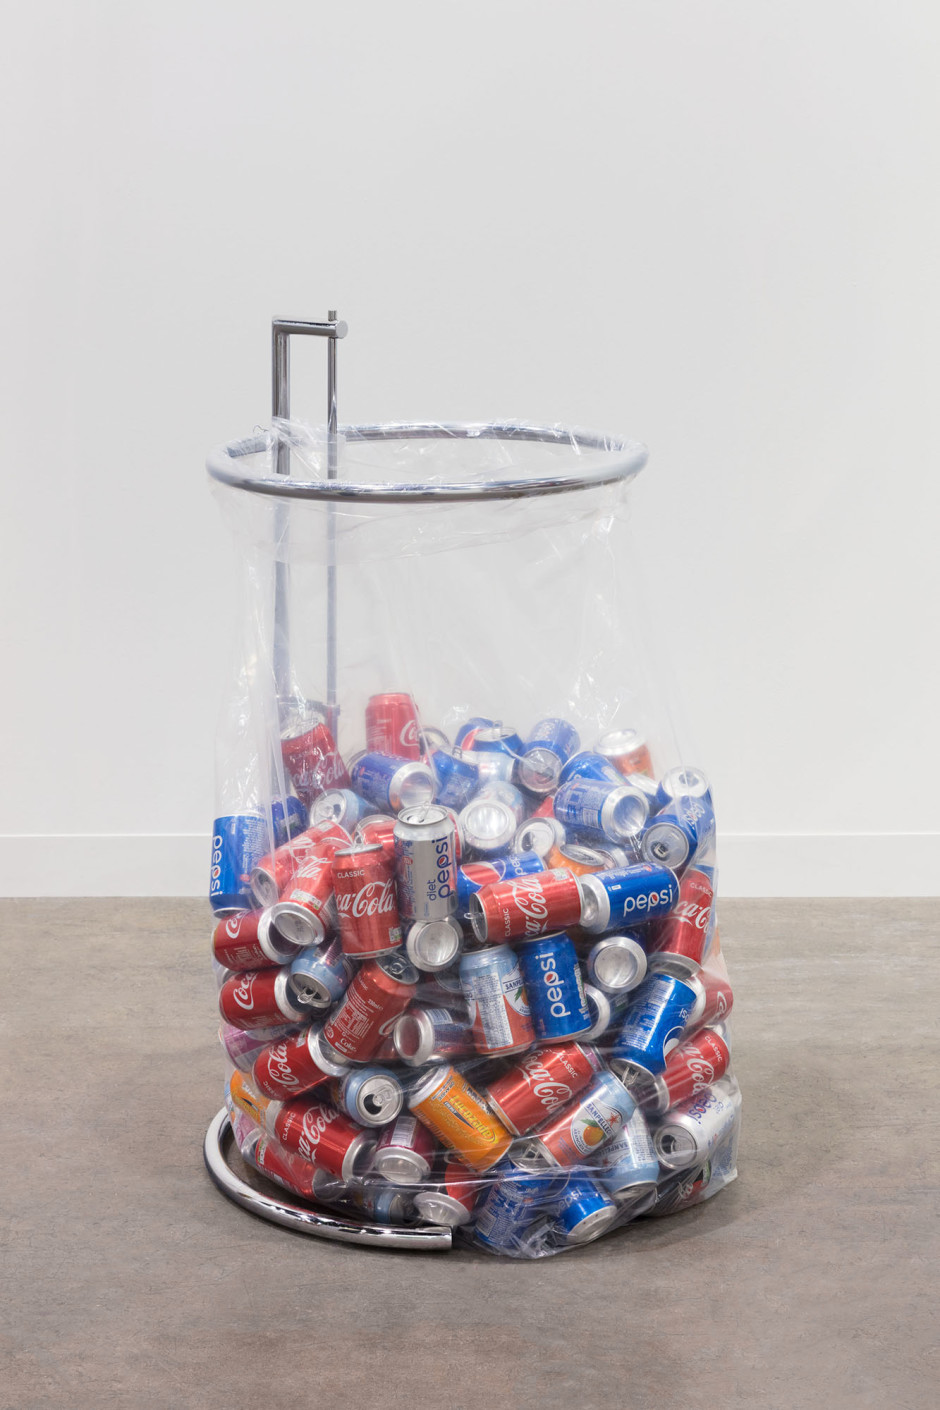 Recycling Sculpture (Eileen Gray Table), 2018  reproduction Eileen Gray E-1027 Table, plastic recycling bag, replenished recyclables  dimensions variable